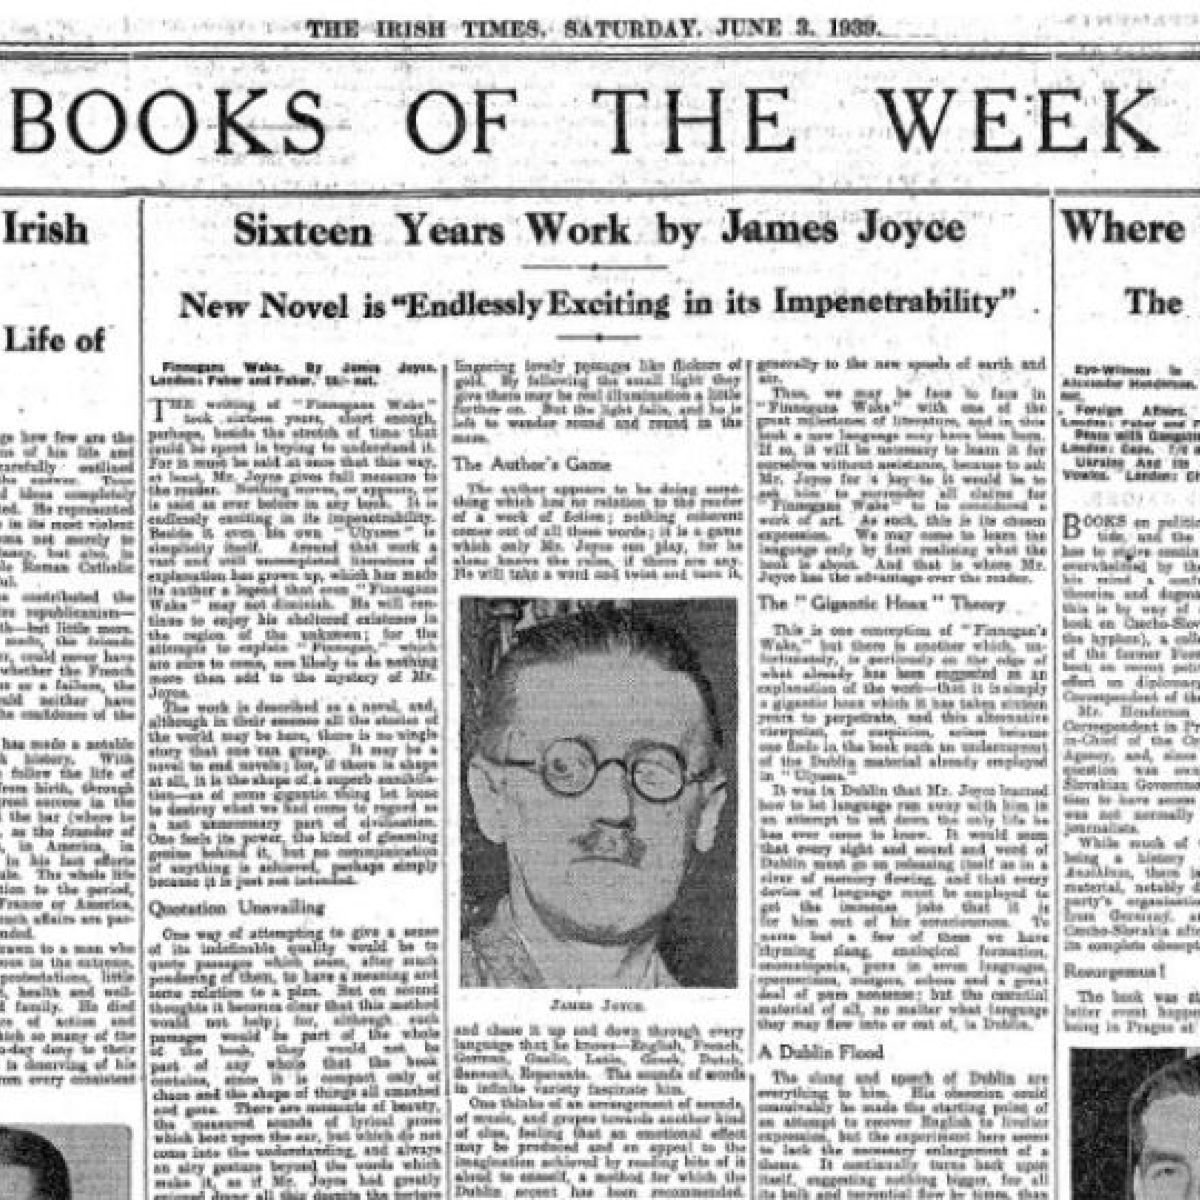 Endlessly Exciting in its Impenetrability': 1939 James Joyce review